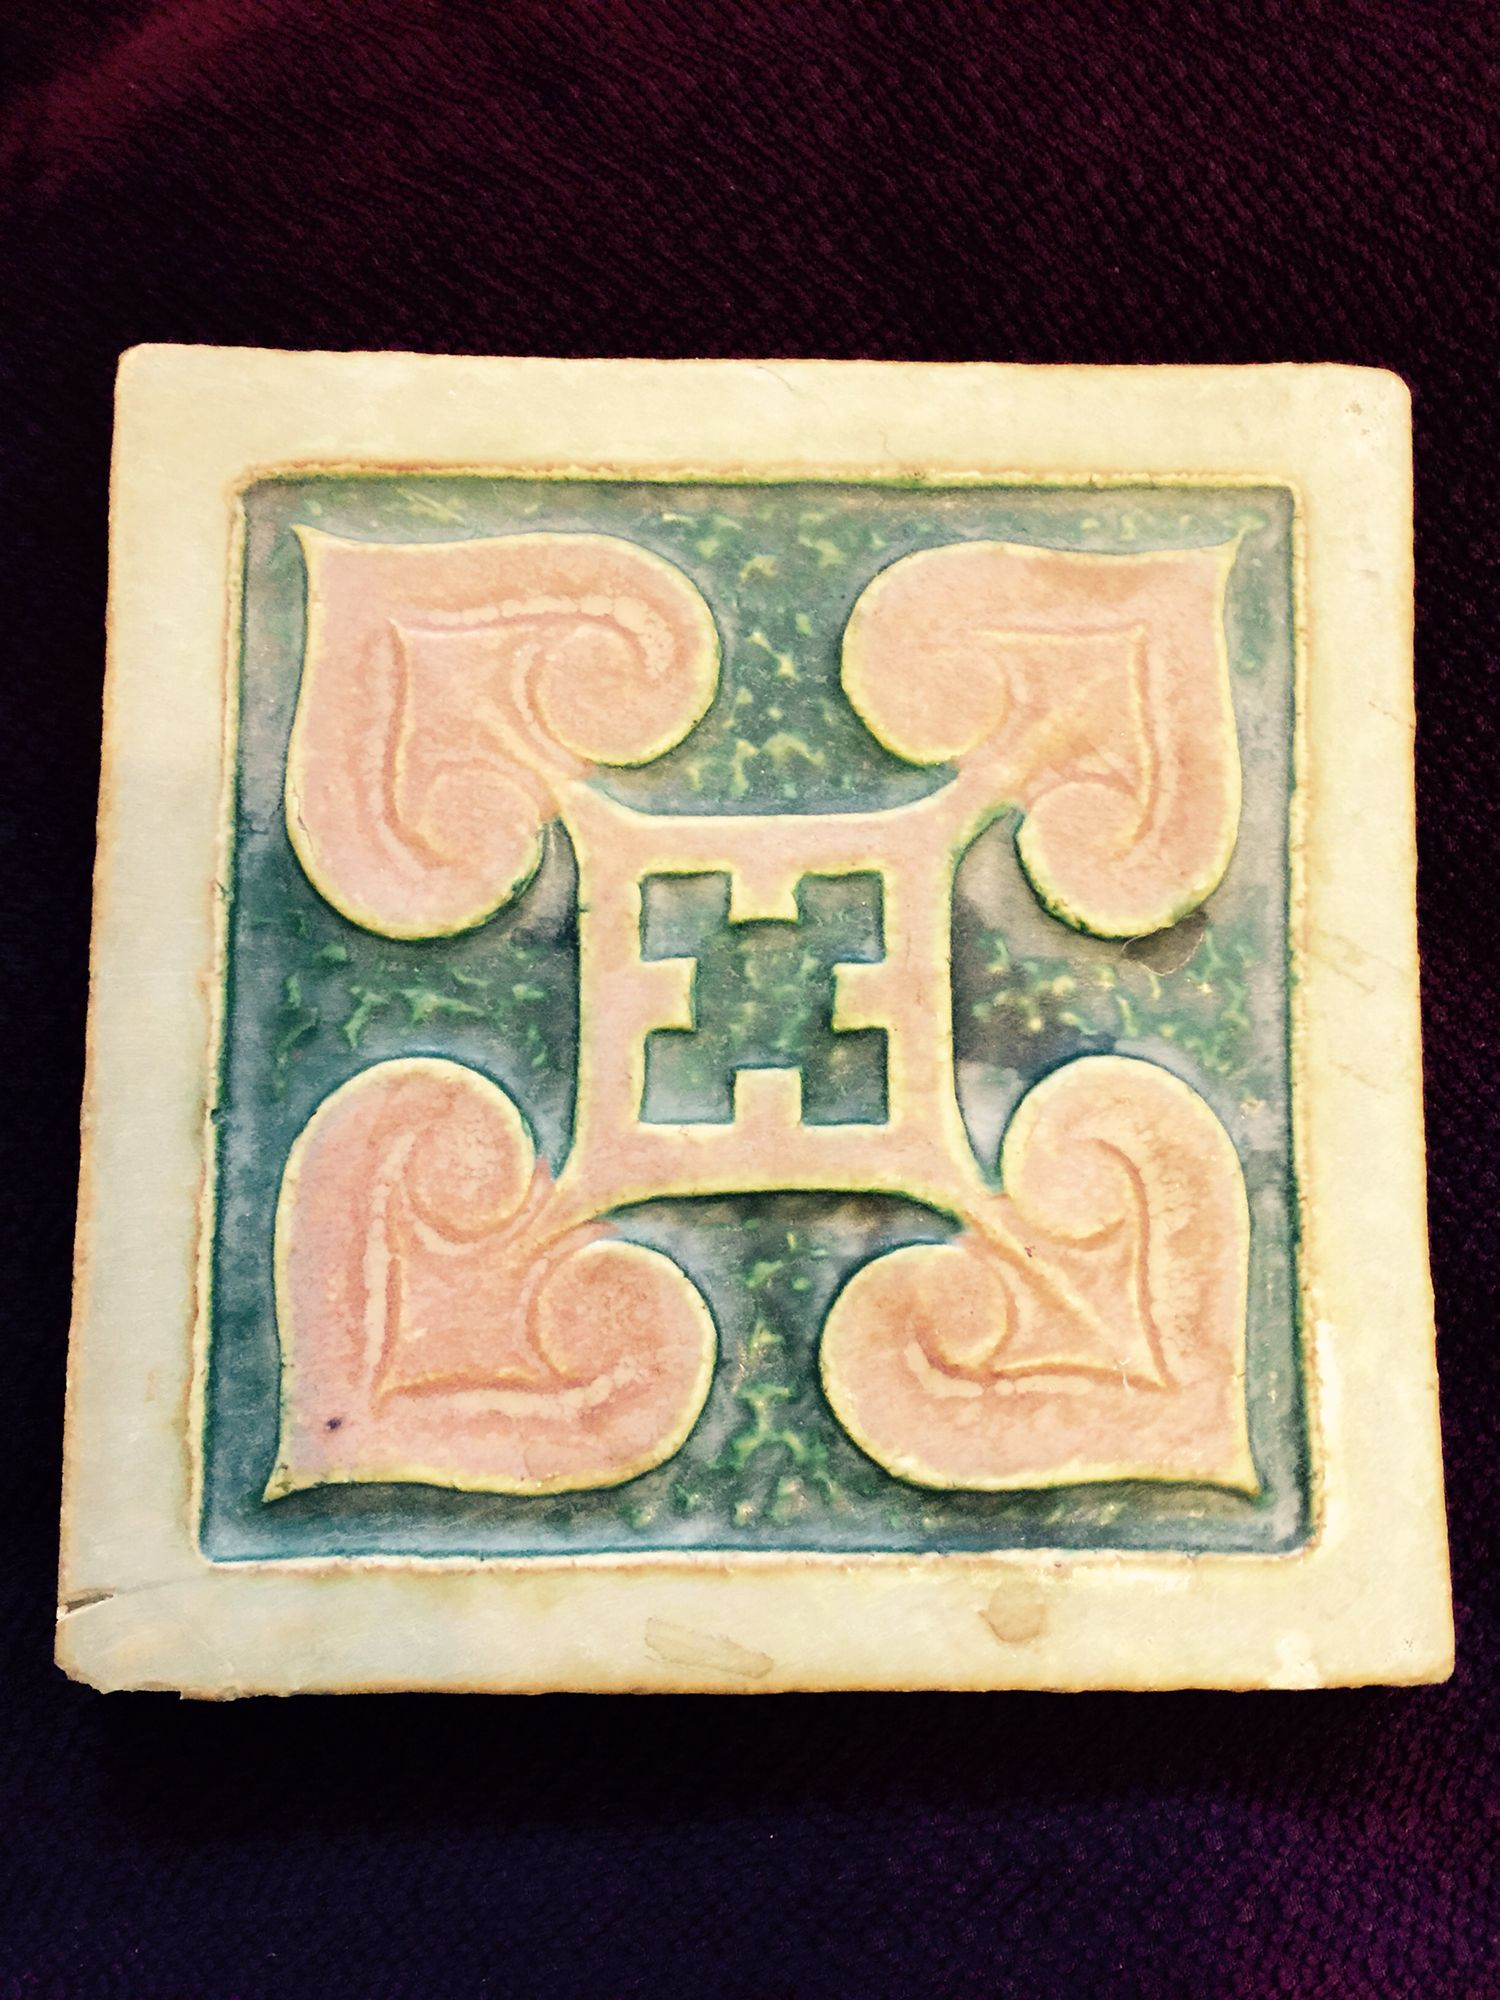 Another tile I found in that some philly burb attic it has some sort of stamp on the back that is hard to make out.  Wall decoration?